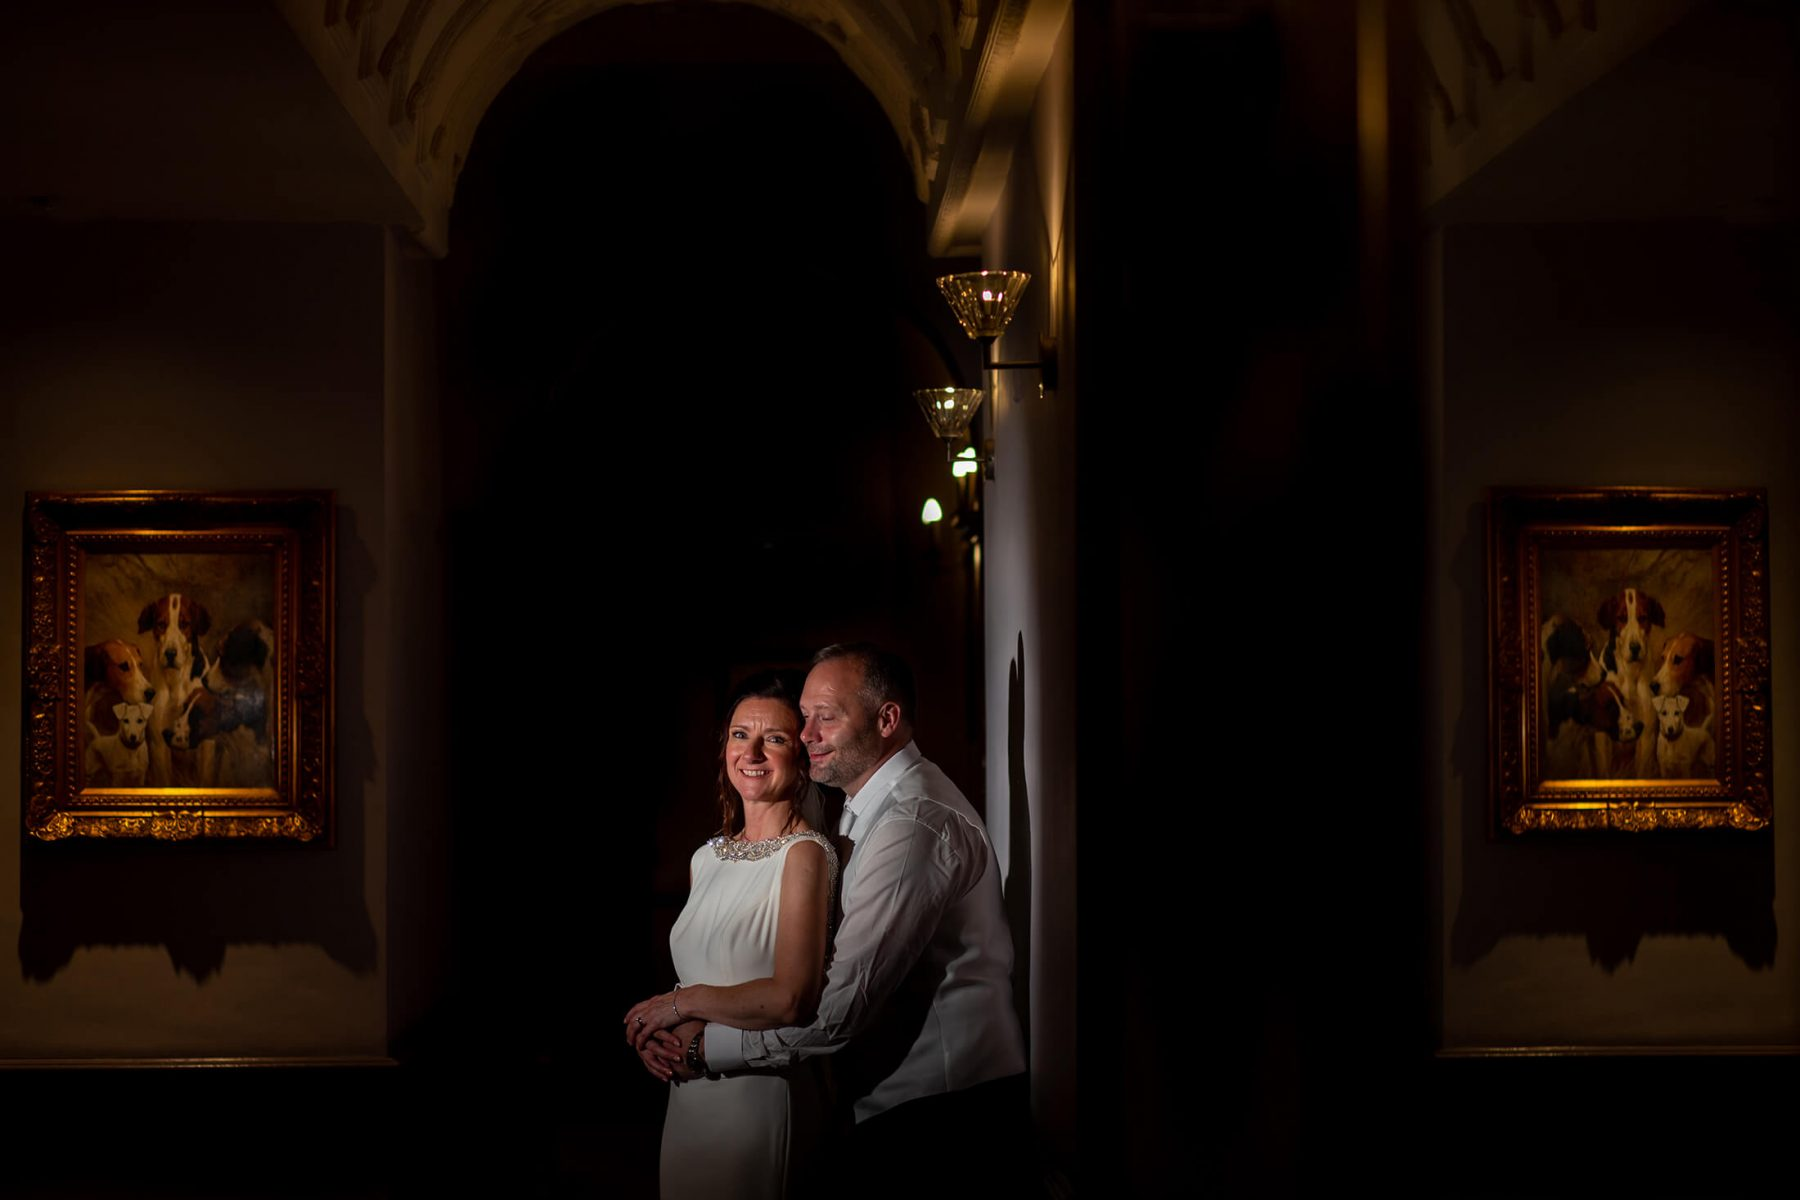 A portrait of the bride and groom in a corridor at Nunsmere Hall.